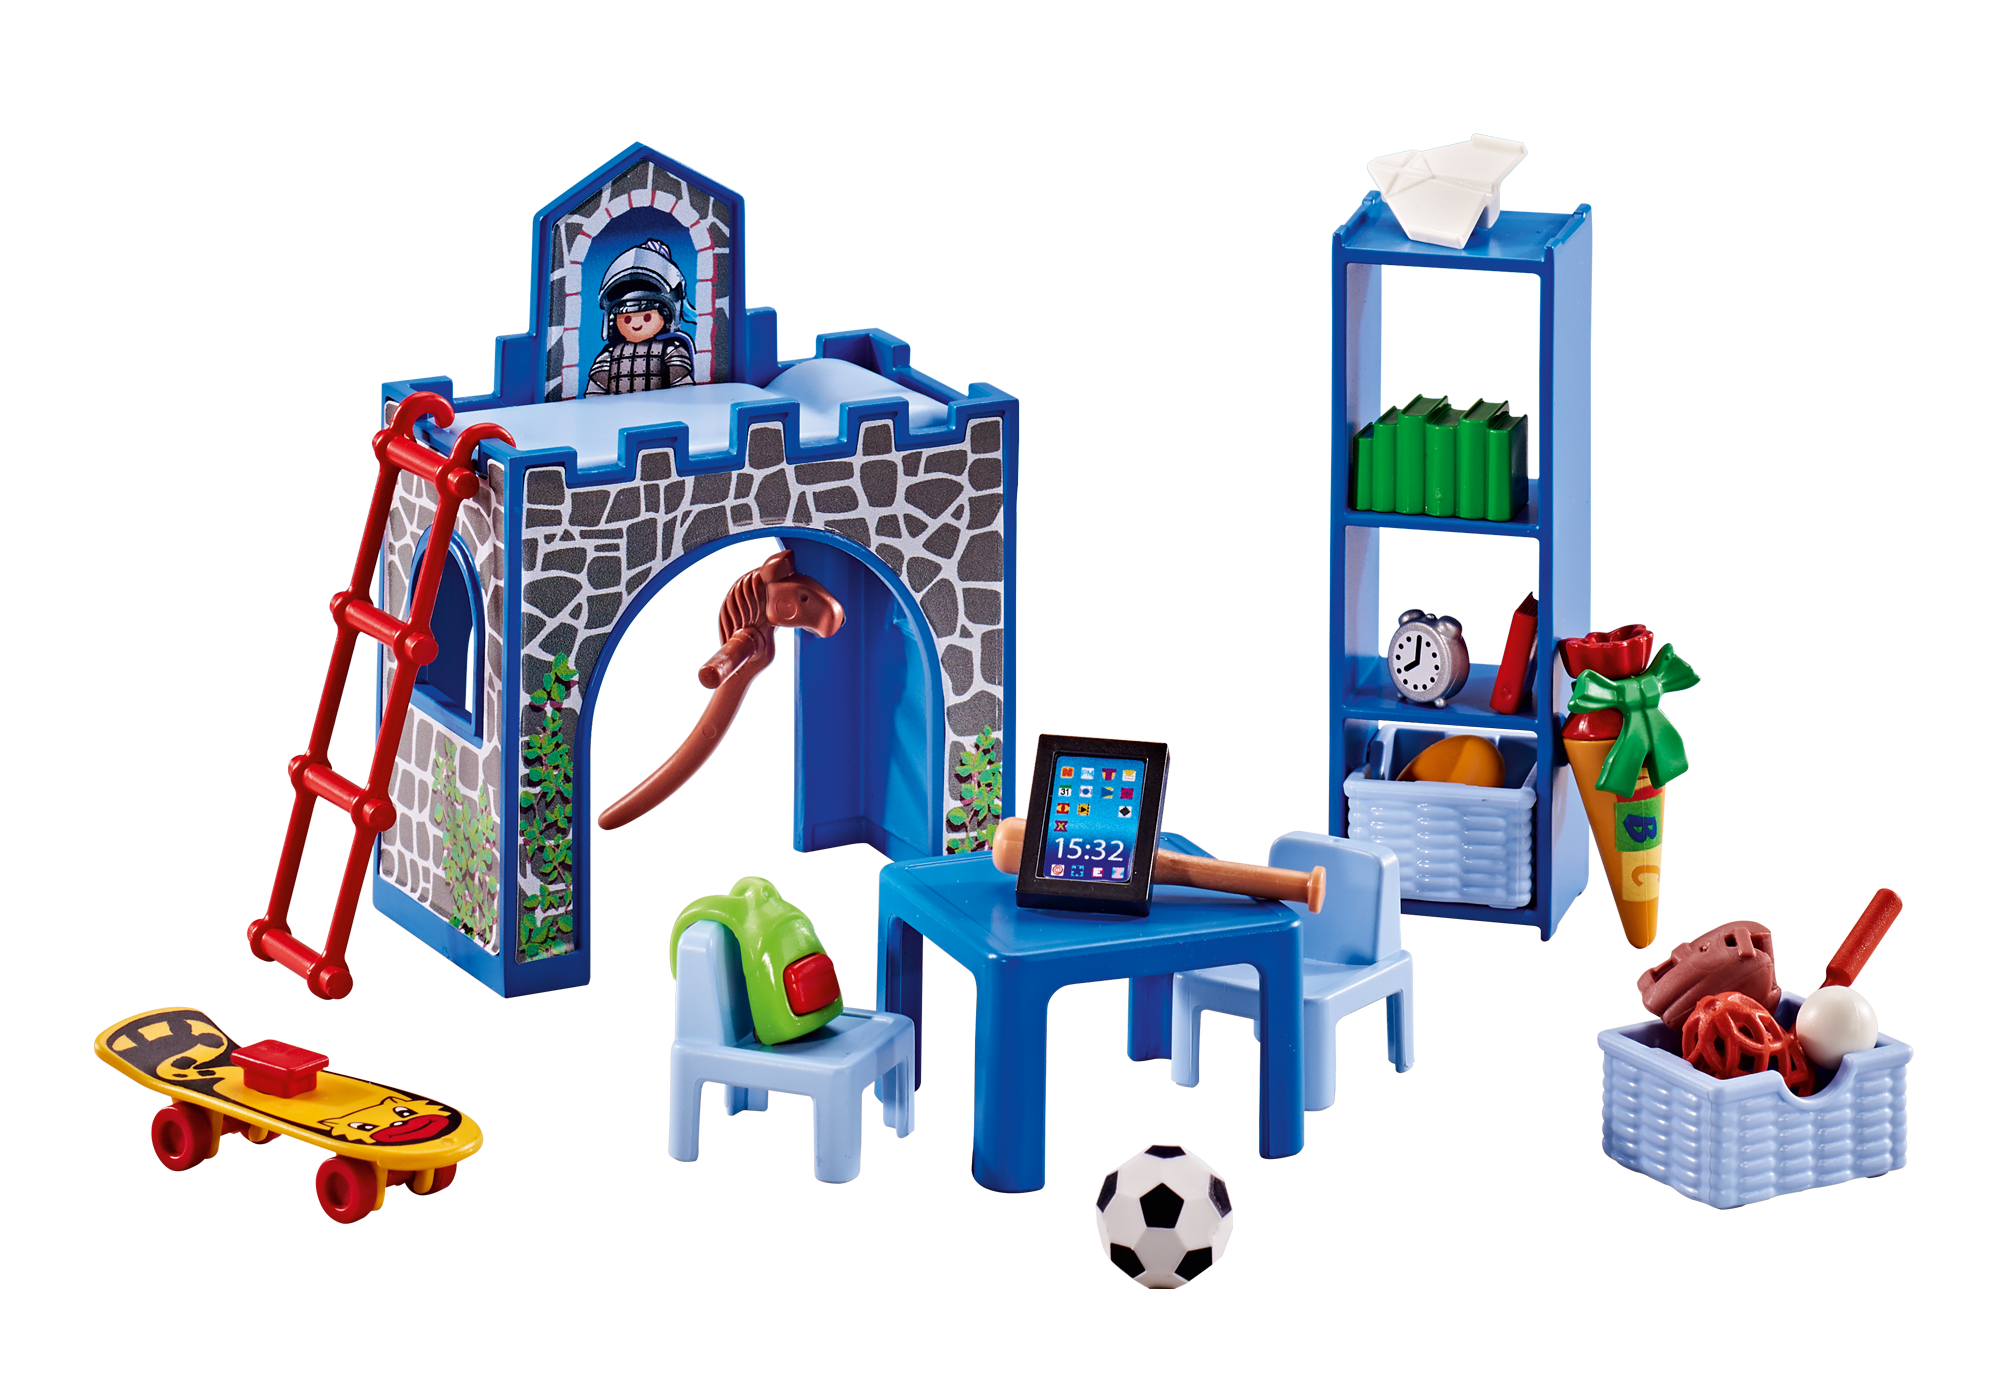 http://media.playmobil.com/i/playmobil/6556_product_detail/Lekrum